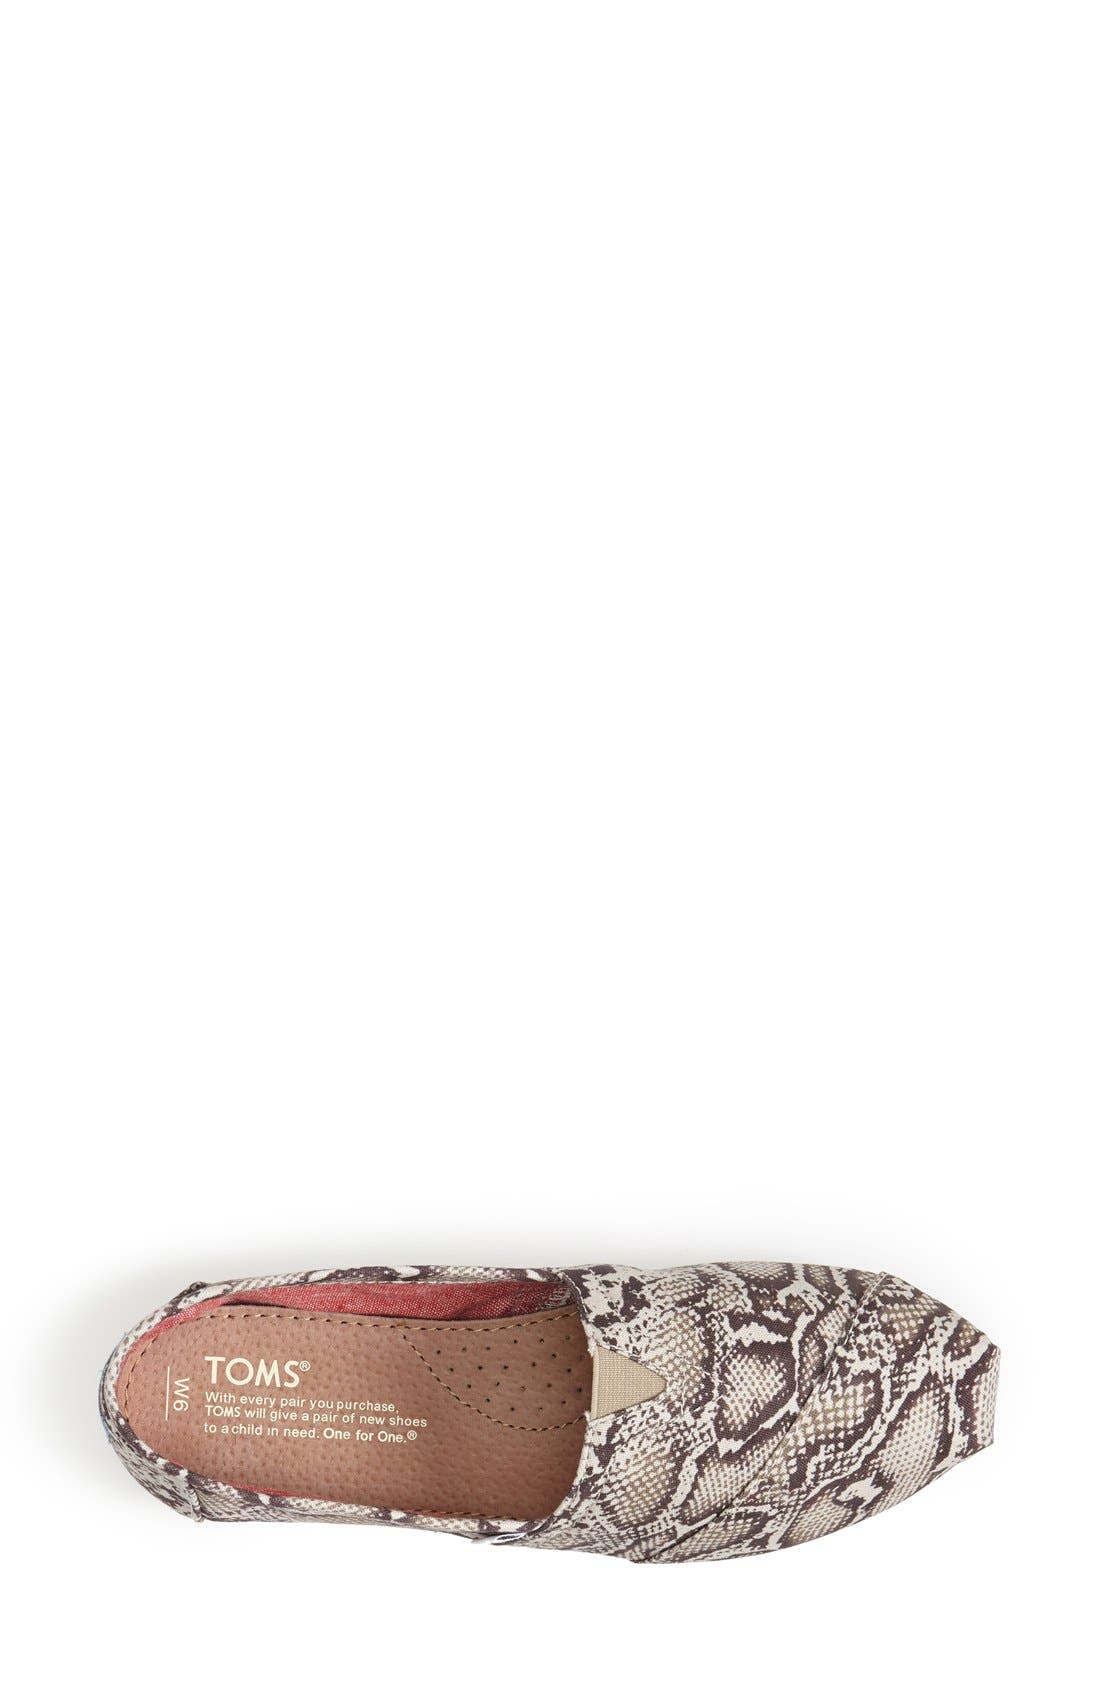 Alternate Image 3  - TOMS 'Classic - Snake' Slip-On (Women)